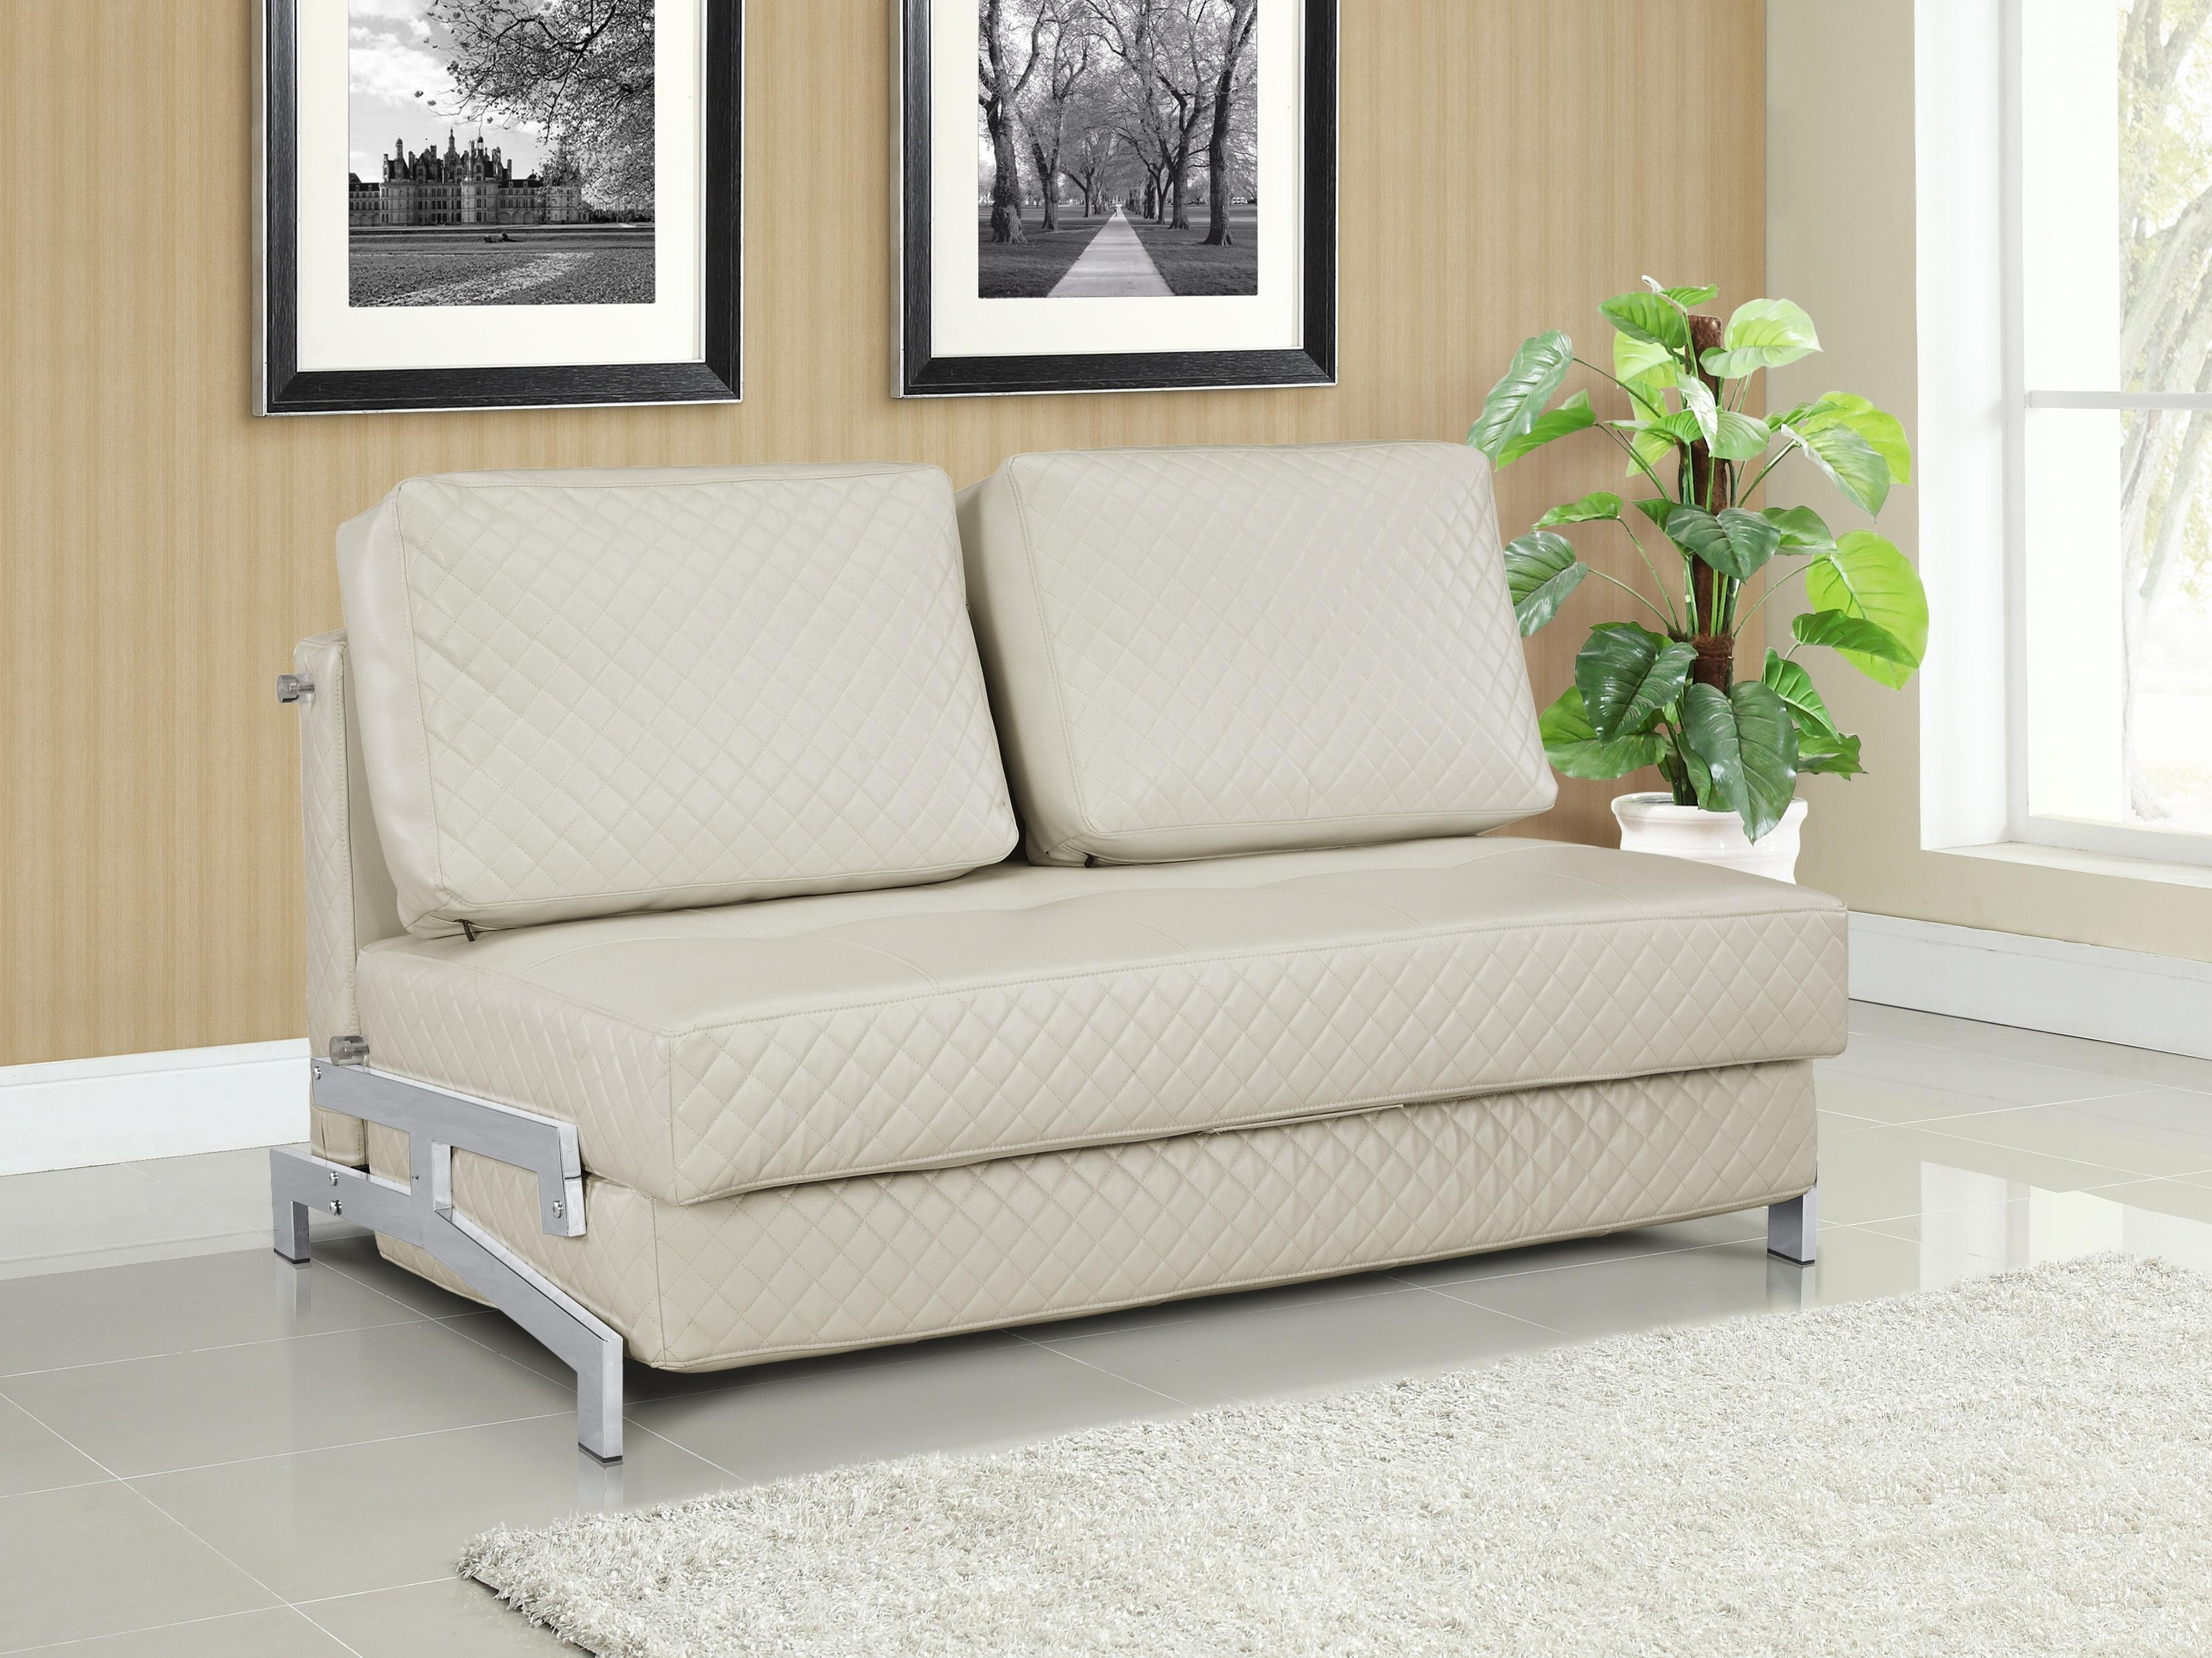 Furniture: Chic Euro Sofa Bed Costco | Redoubtable Lifestyle For Euro Sofas (View 18 of 20)